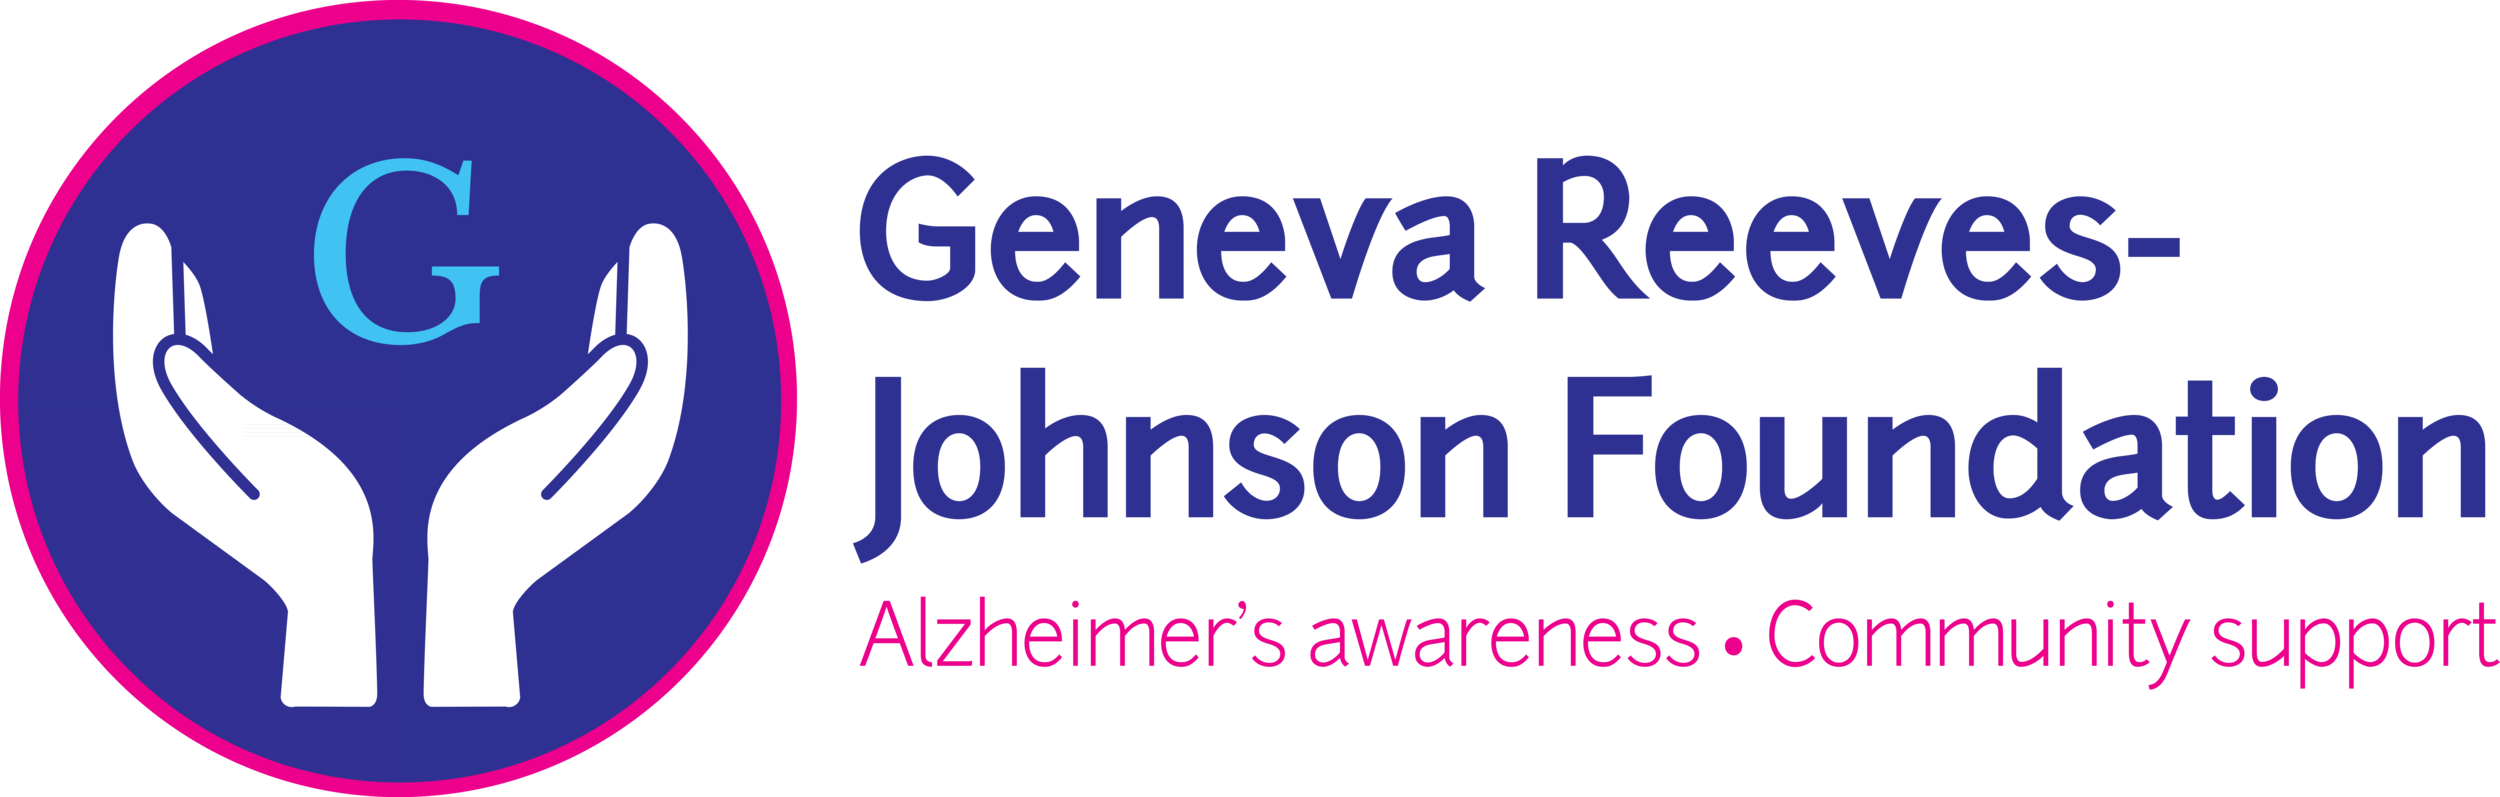 GRJ Foundation 2 PNG.png